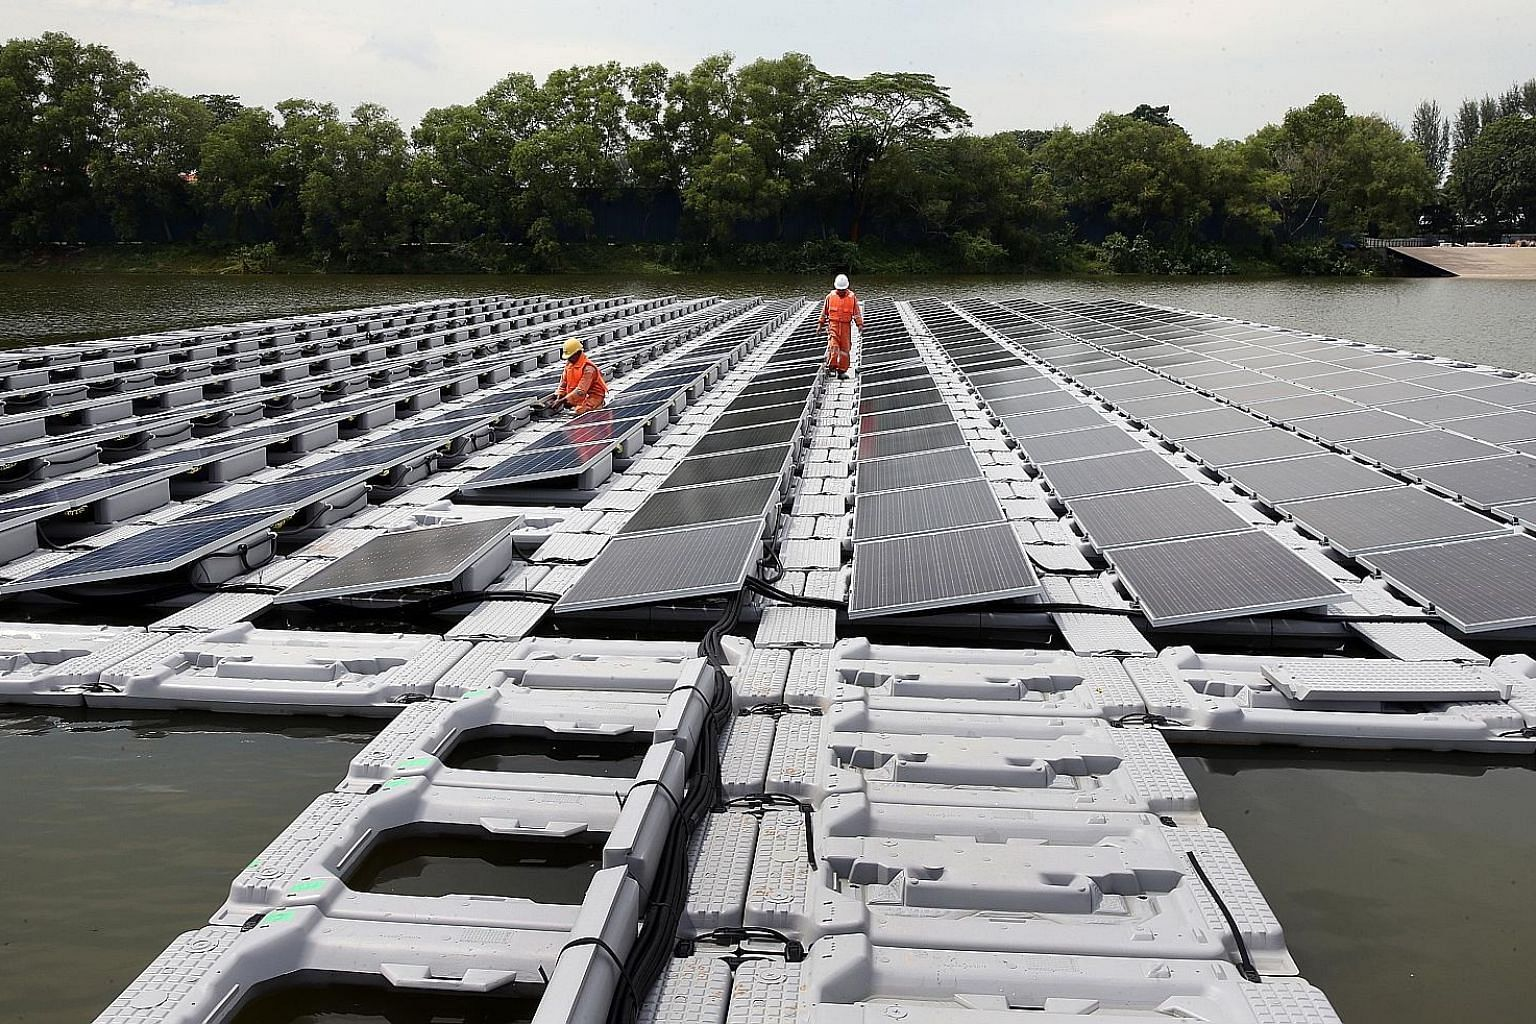 The floating solar panel test bed at Tengeh Reservoir was launched last year to study different photovoltaic systems. Solar energy is important to Singapore since other forms of renewable energy are not as viable here.